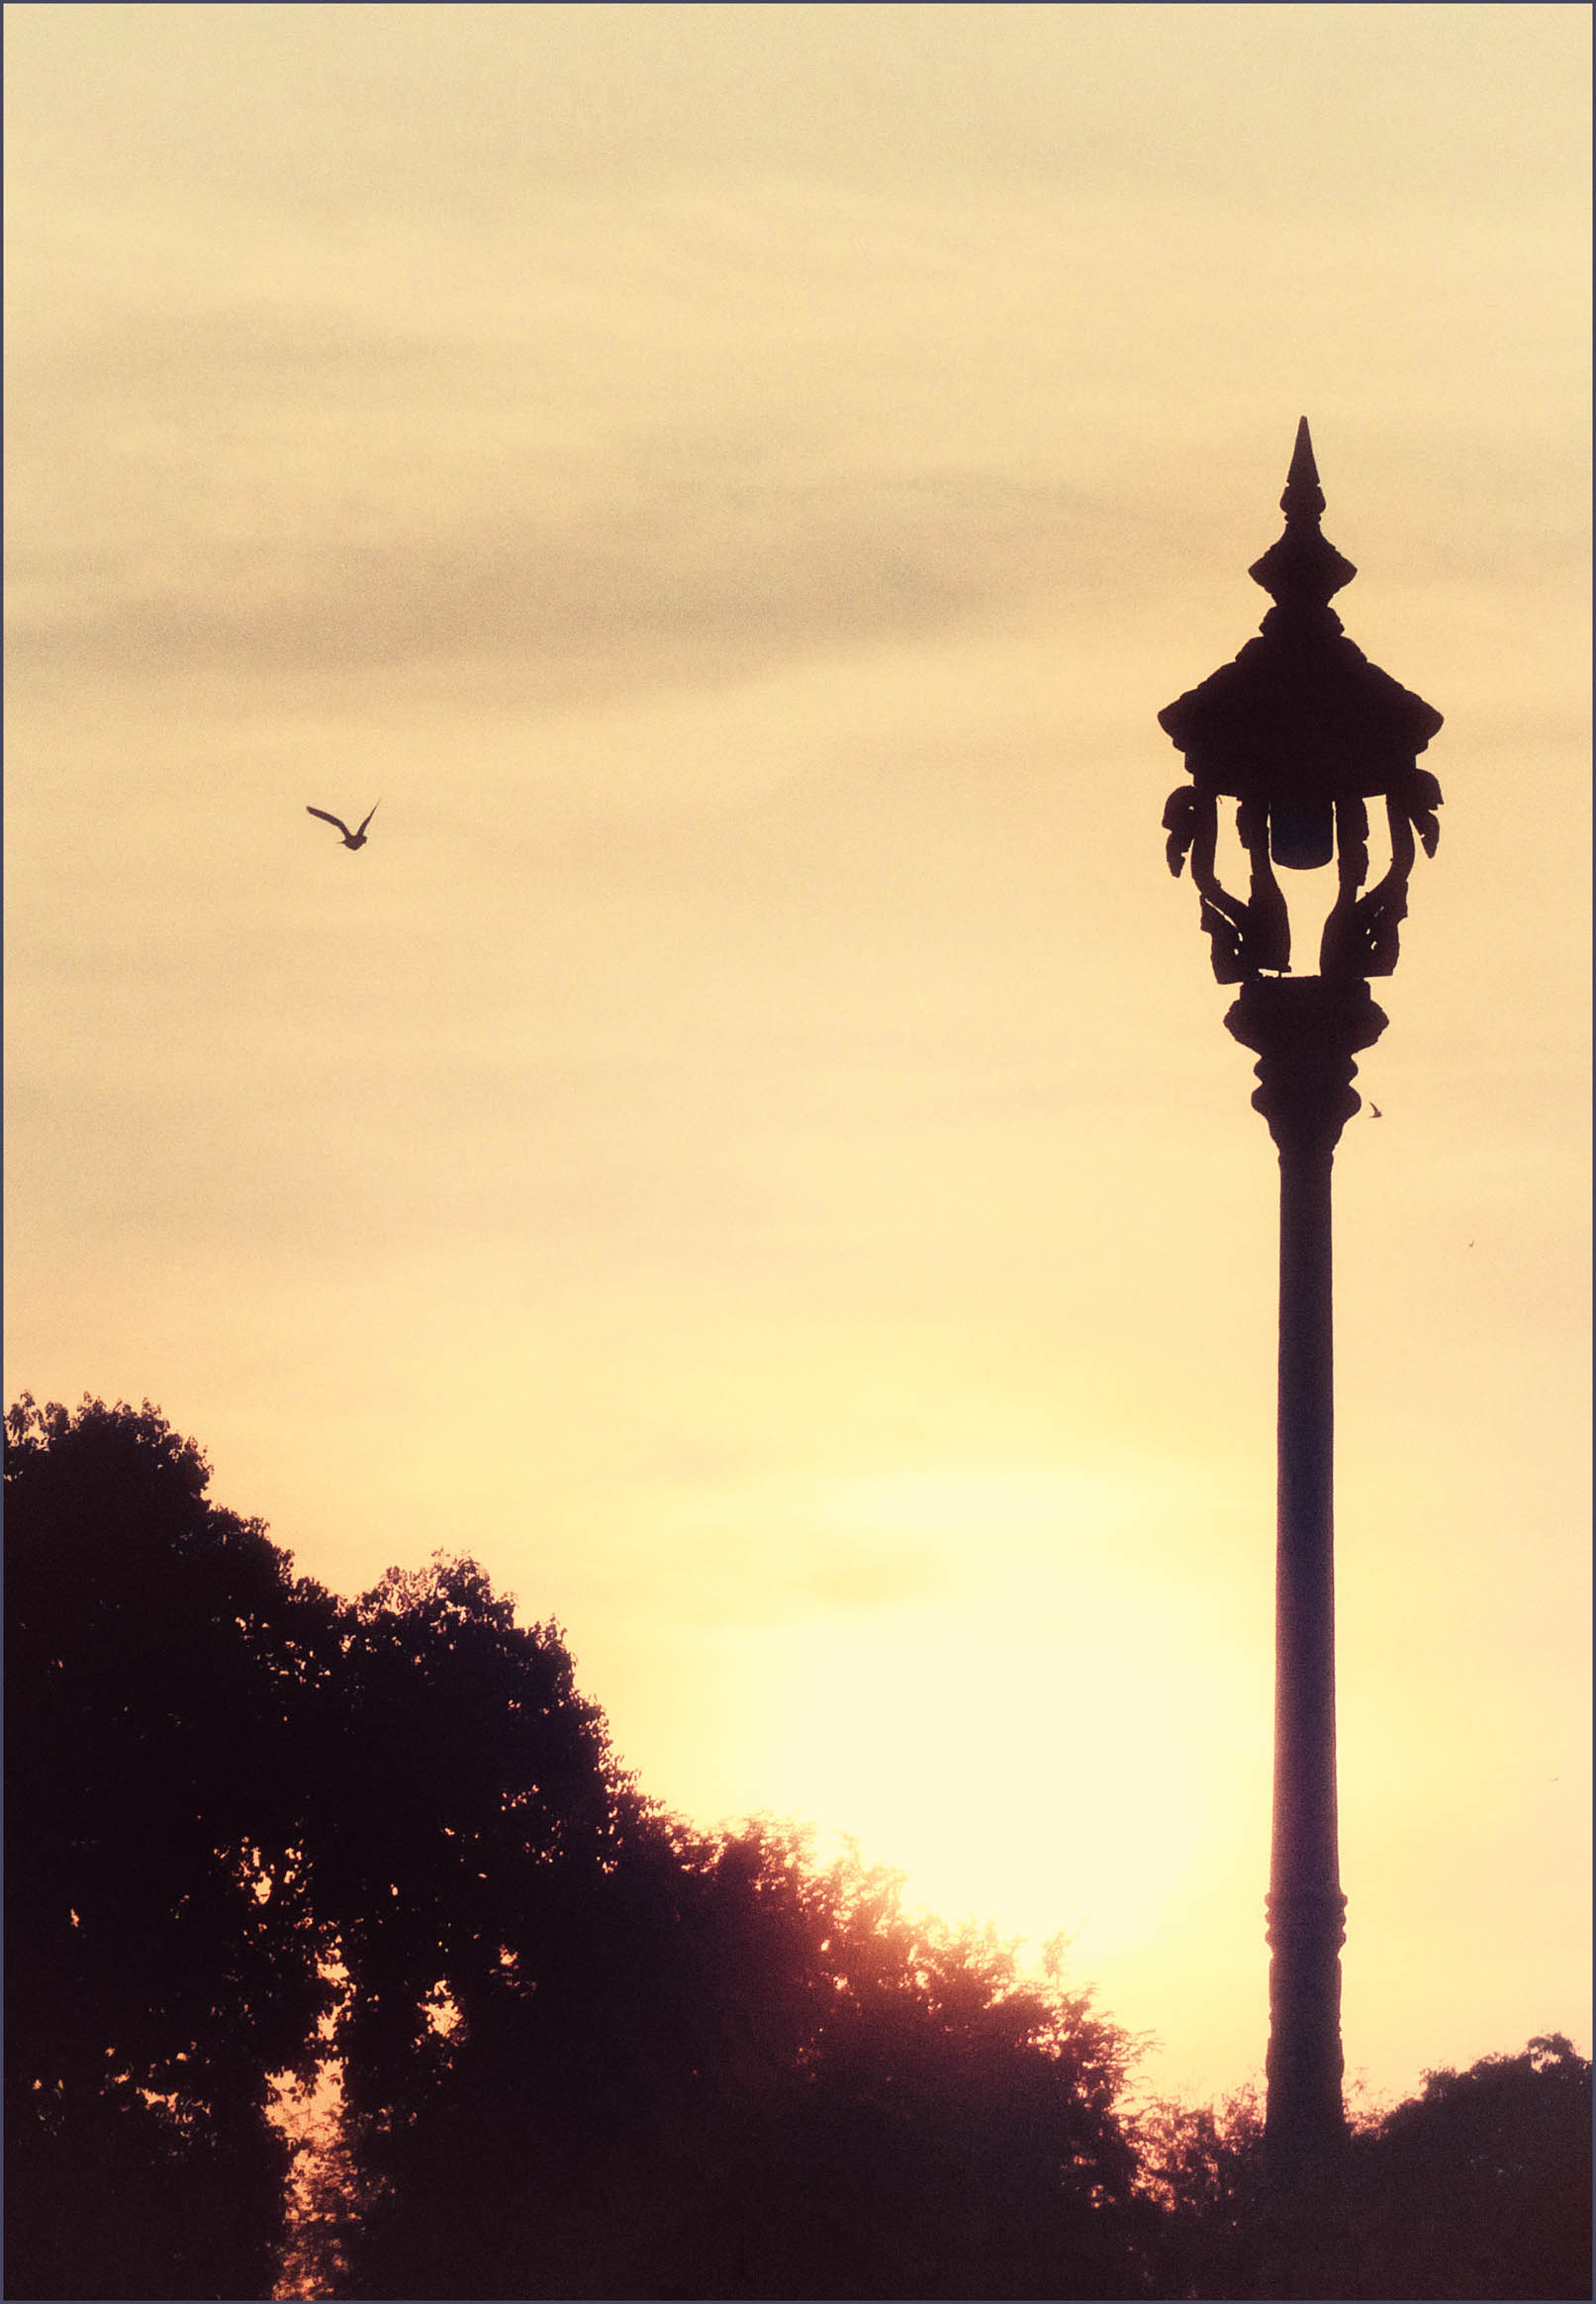 Sunset sky and lamppost